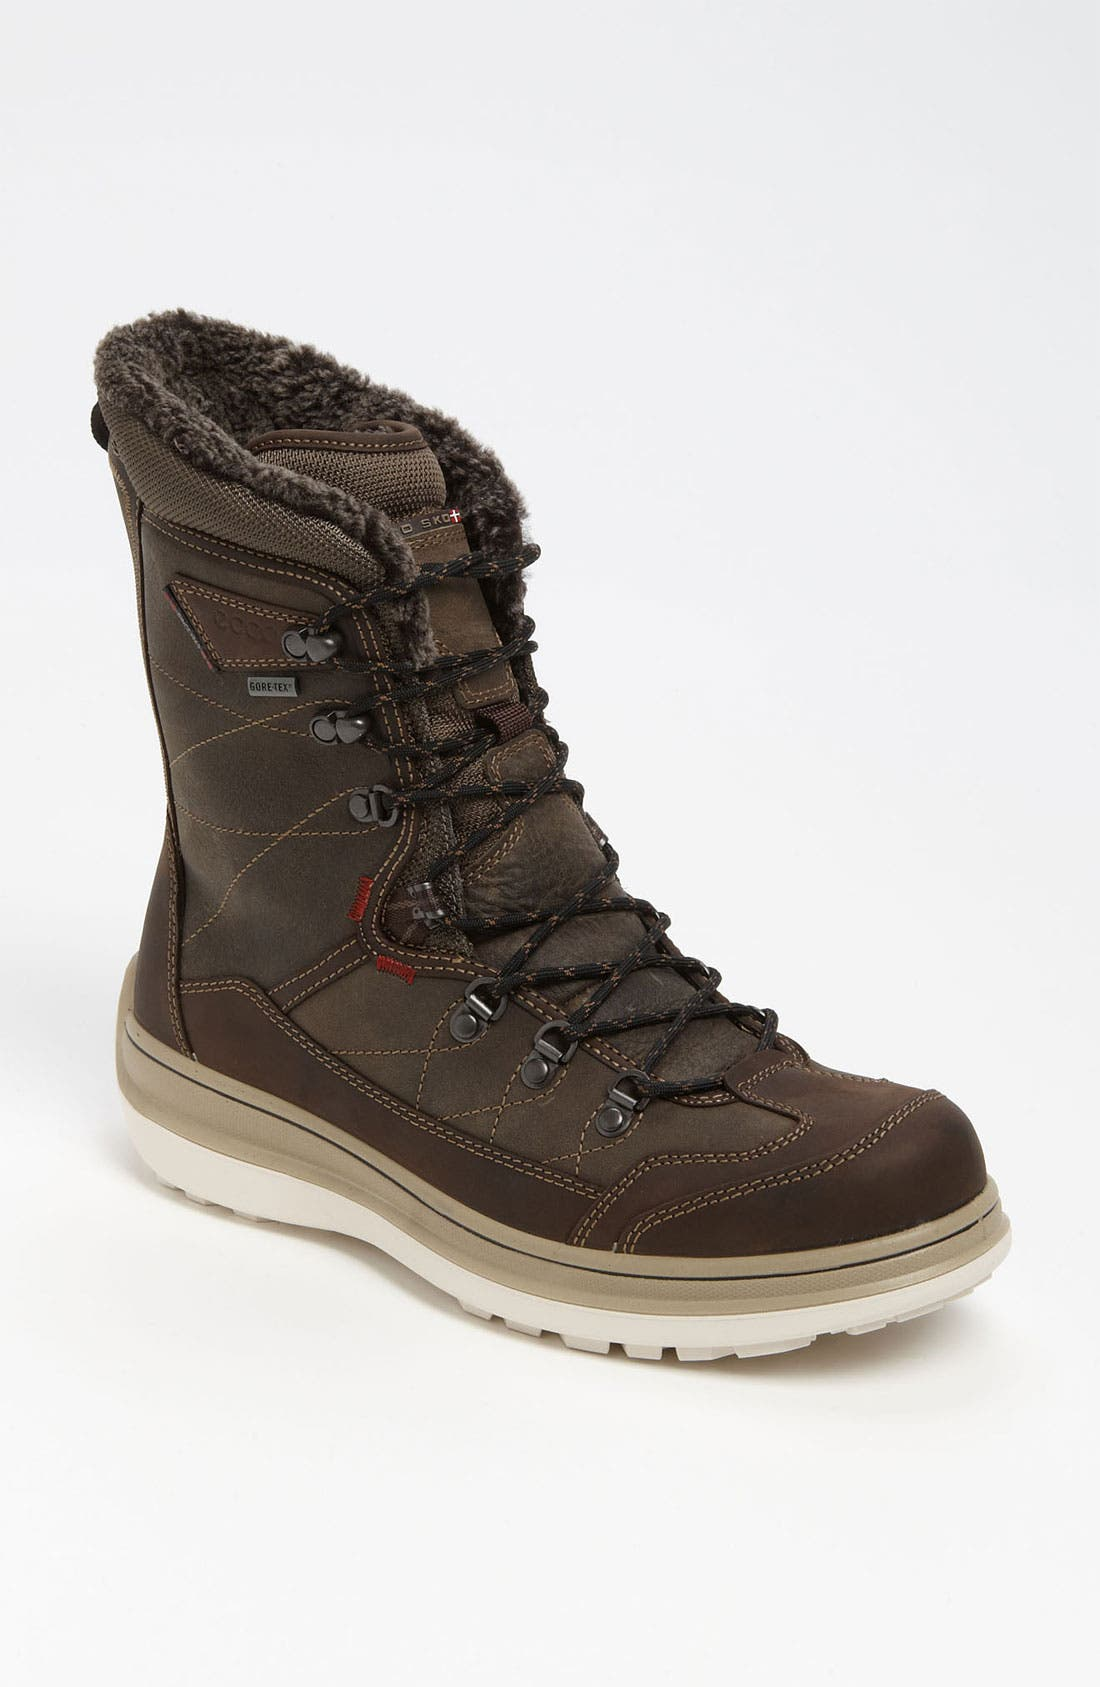 Alternate Image 1 Selected - ECCO 'Roxton GTX' Snowboard Boot (Online Only) (Men)